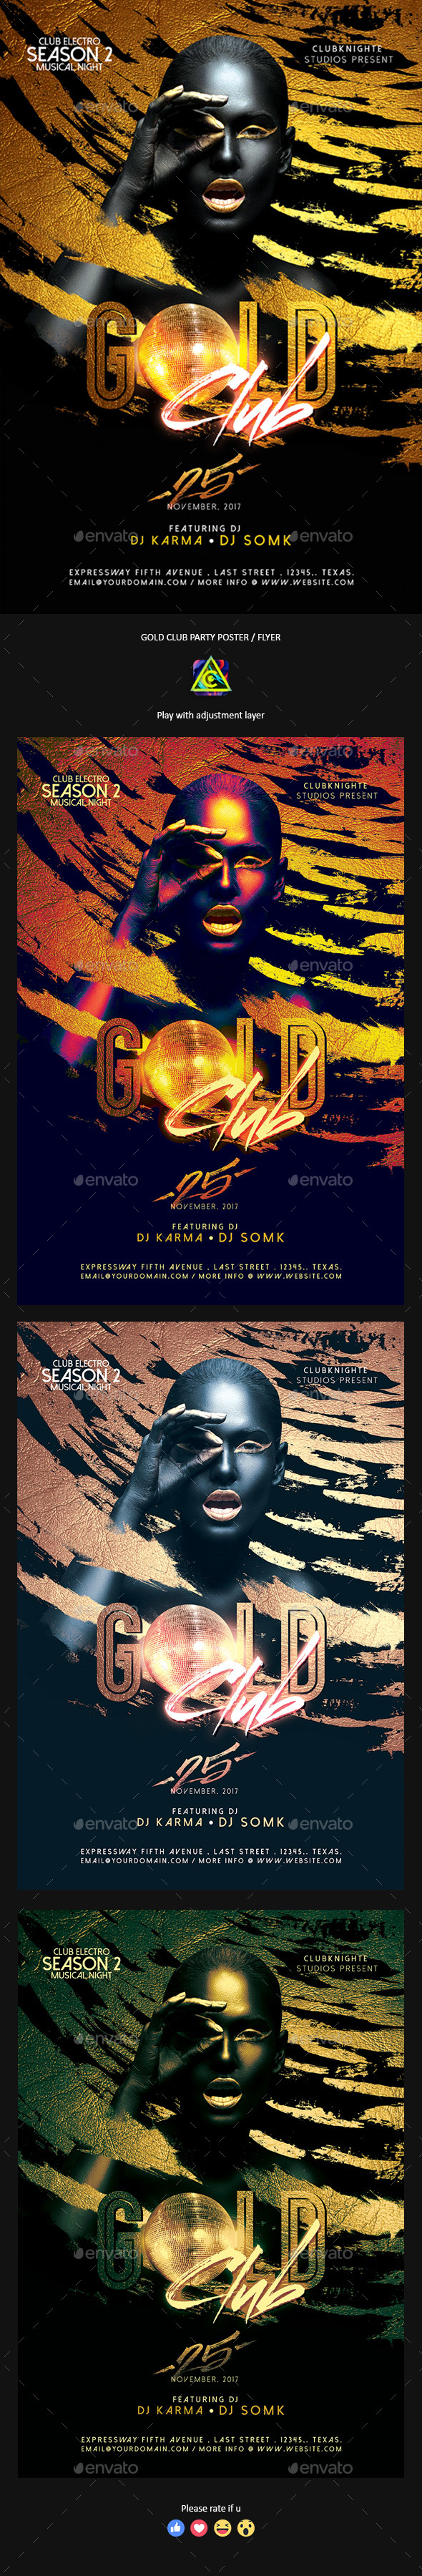 Gold Club Party Poster / Flyer - Clubs & Parties Events